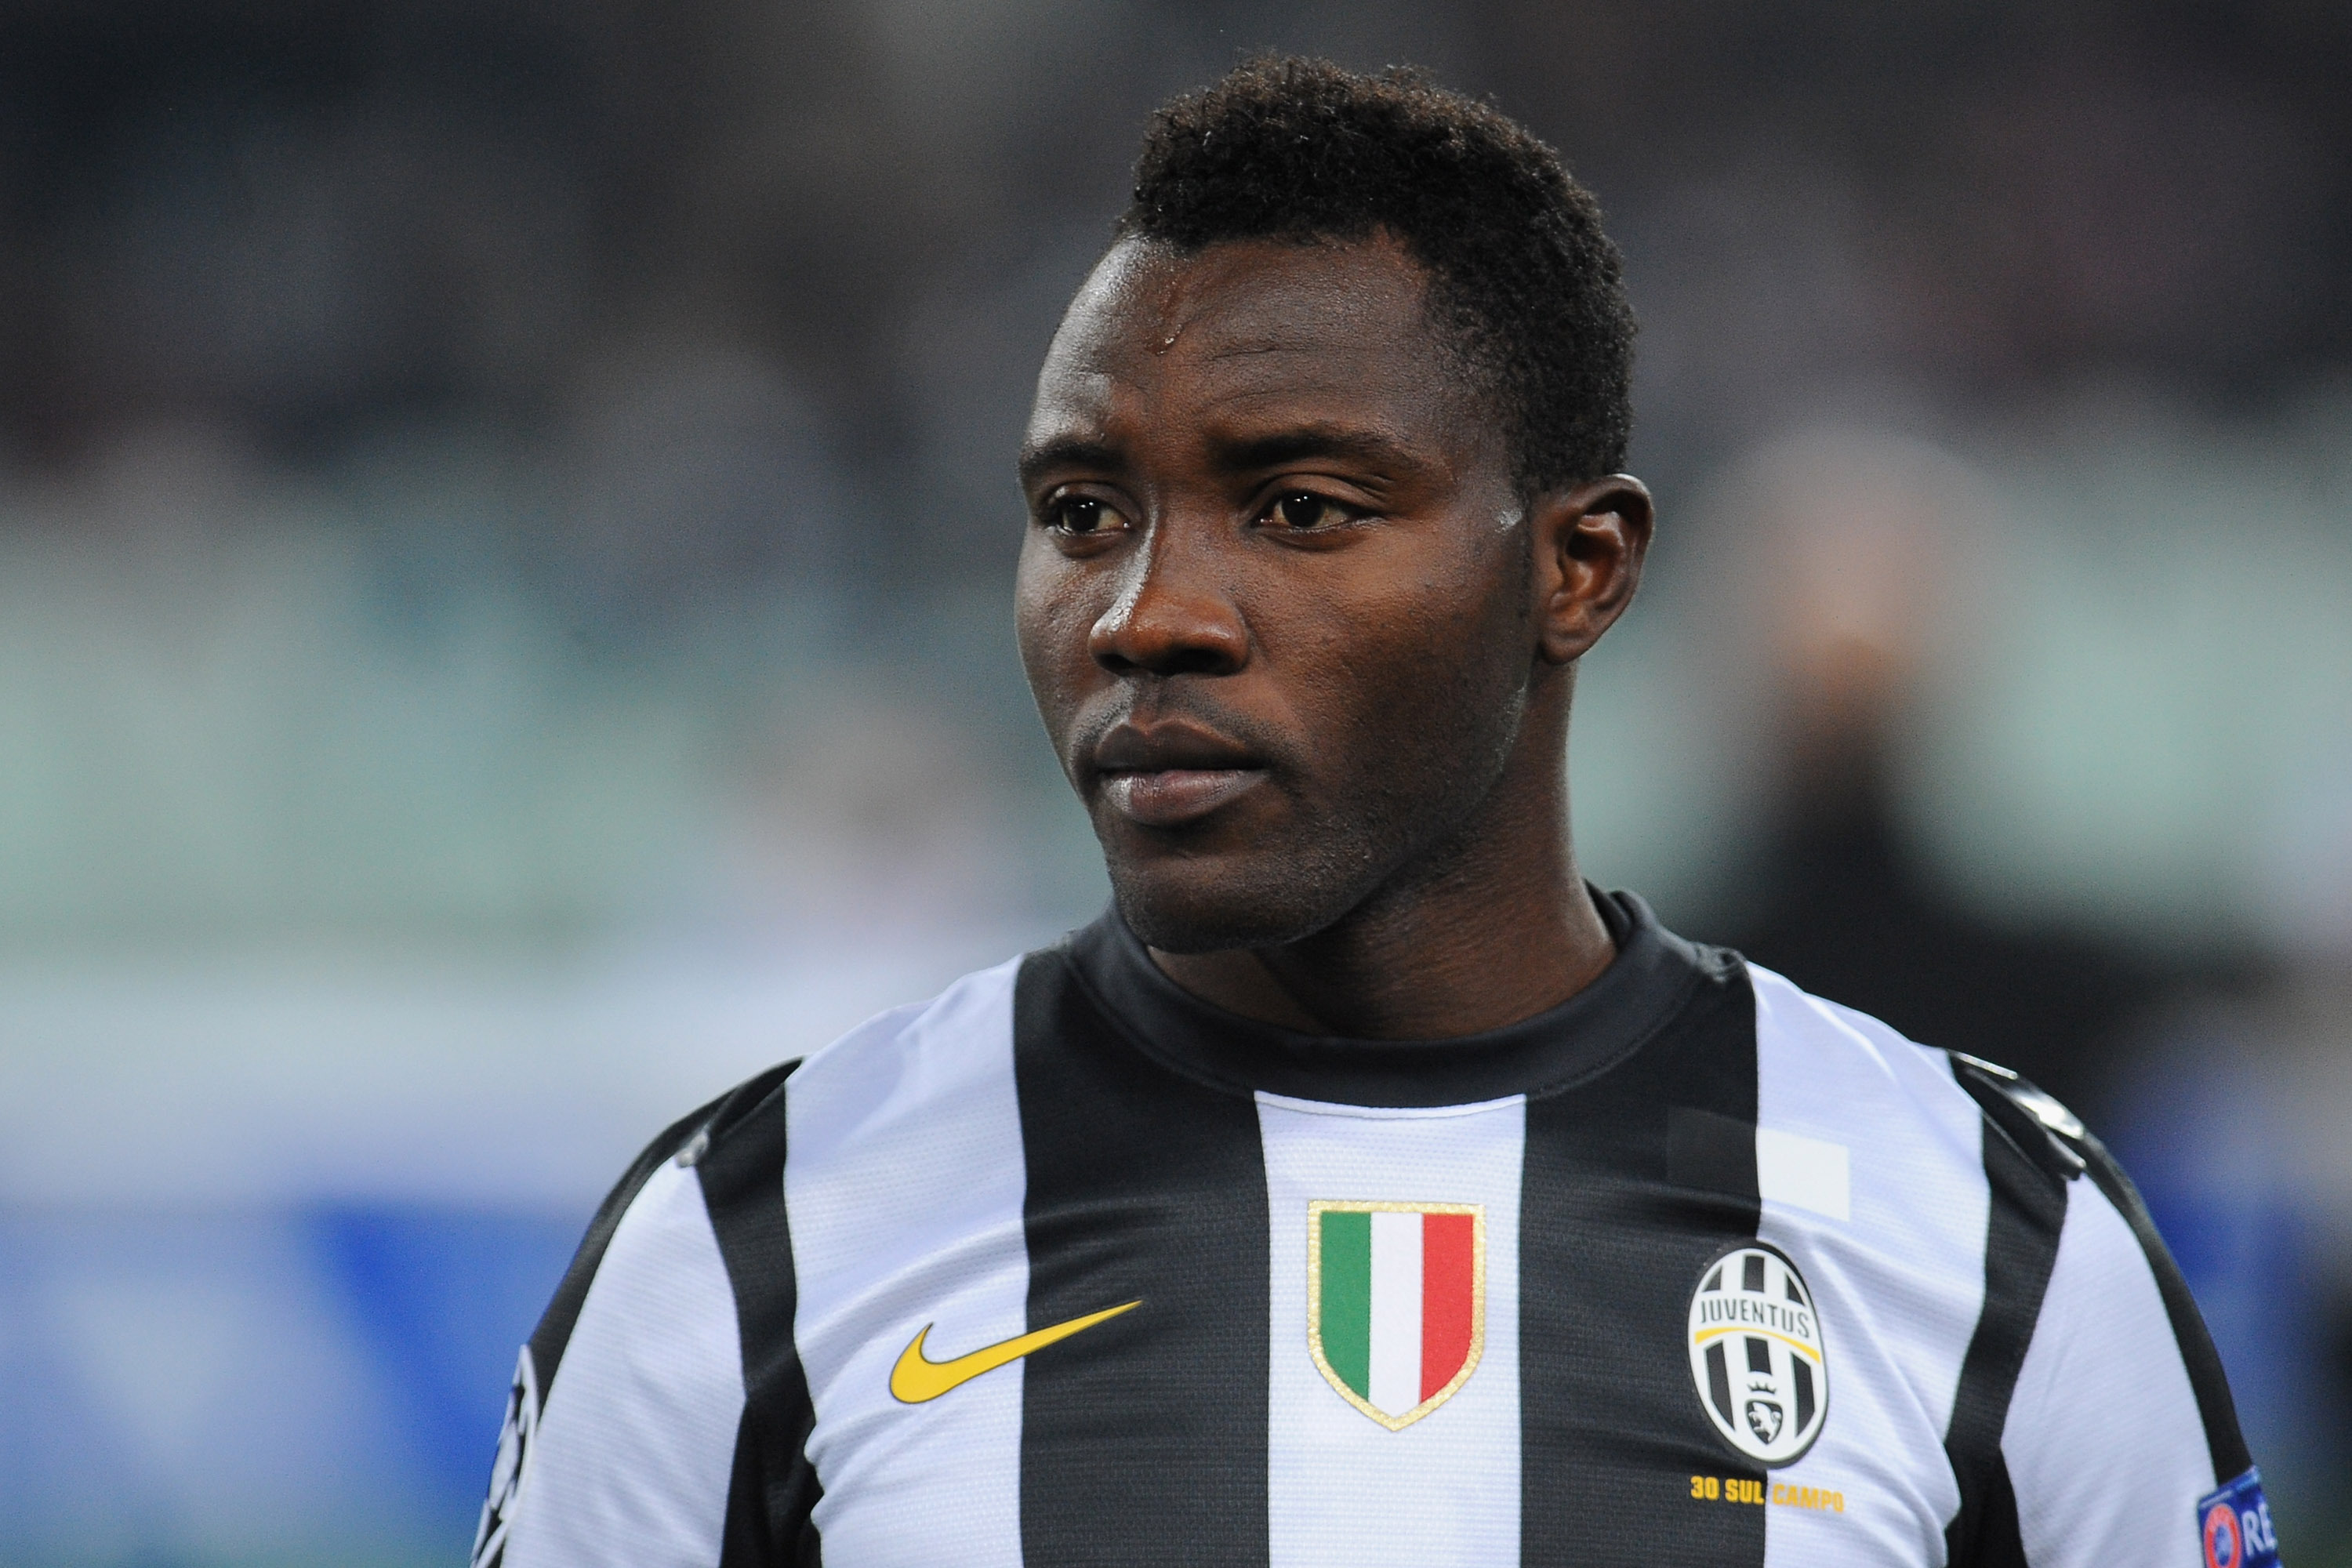 Kwadwo Asamoah: Scouting Juventus' Highly Rated Ghanaian Midfielder | Bleacher Report | Latest News, Videos and Highlights